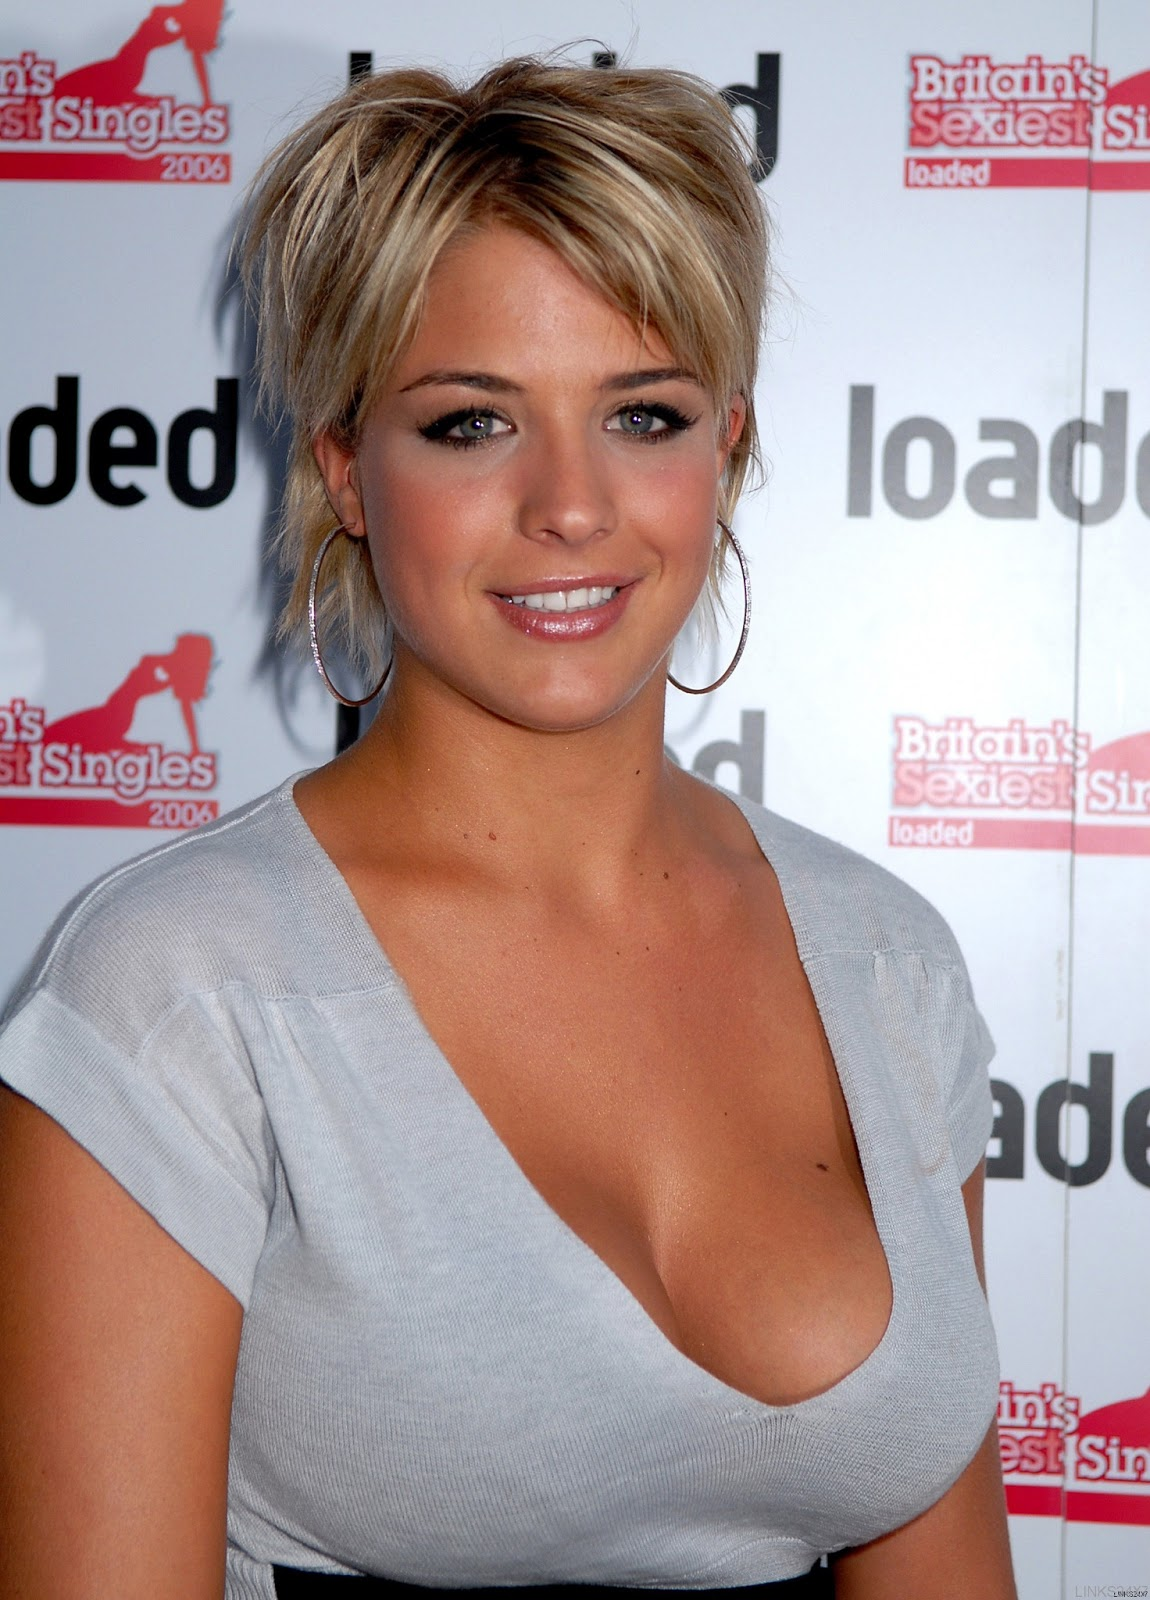 Gemma Atkinson boobs